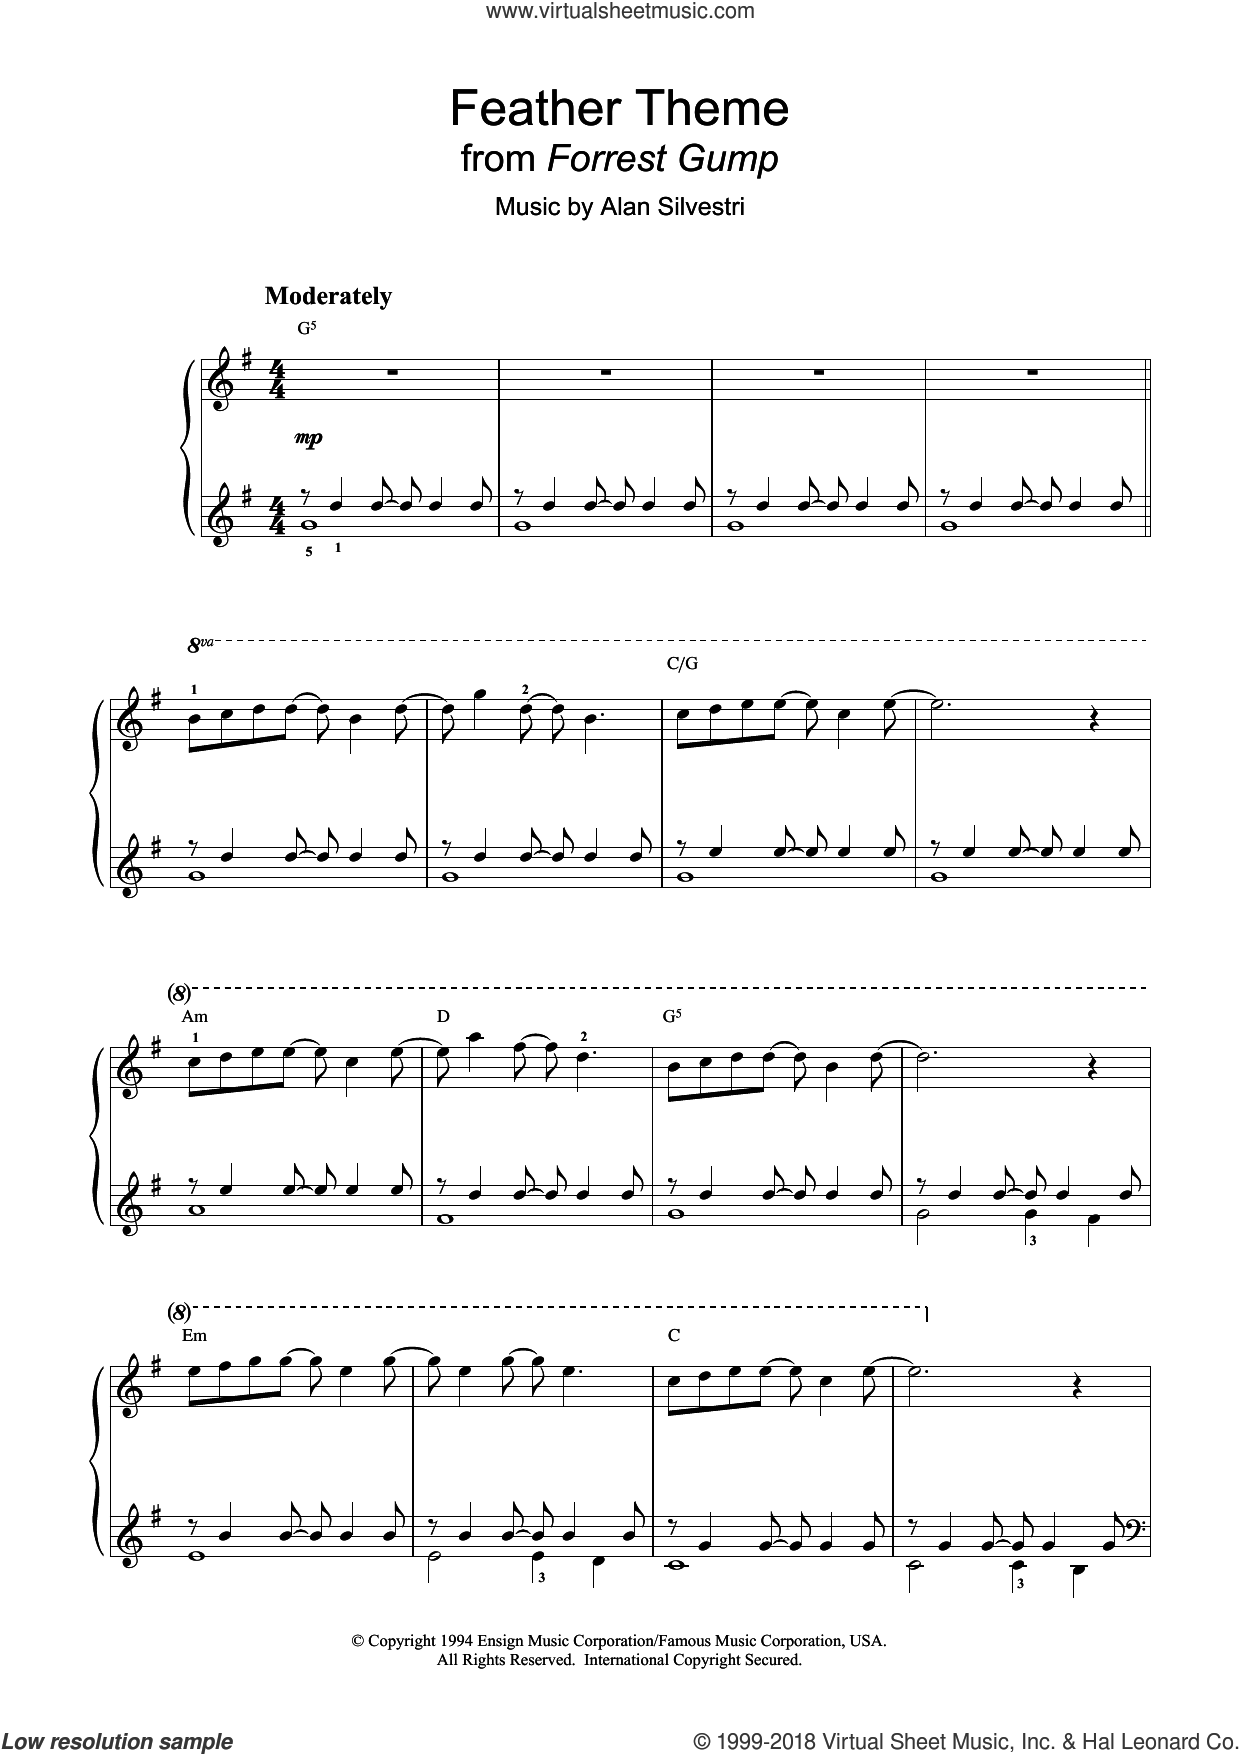 Feather Theme sheet music for piano solo by Alan Silvestri